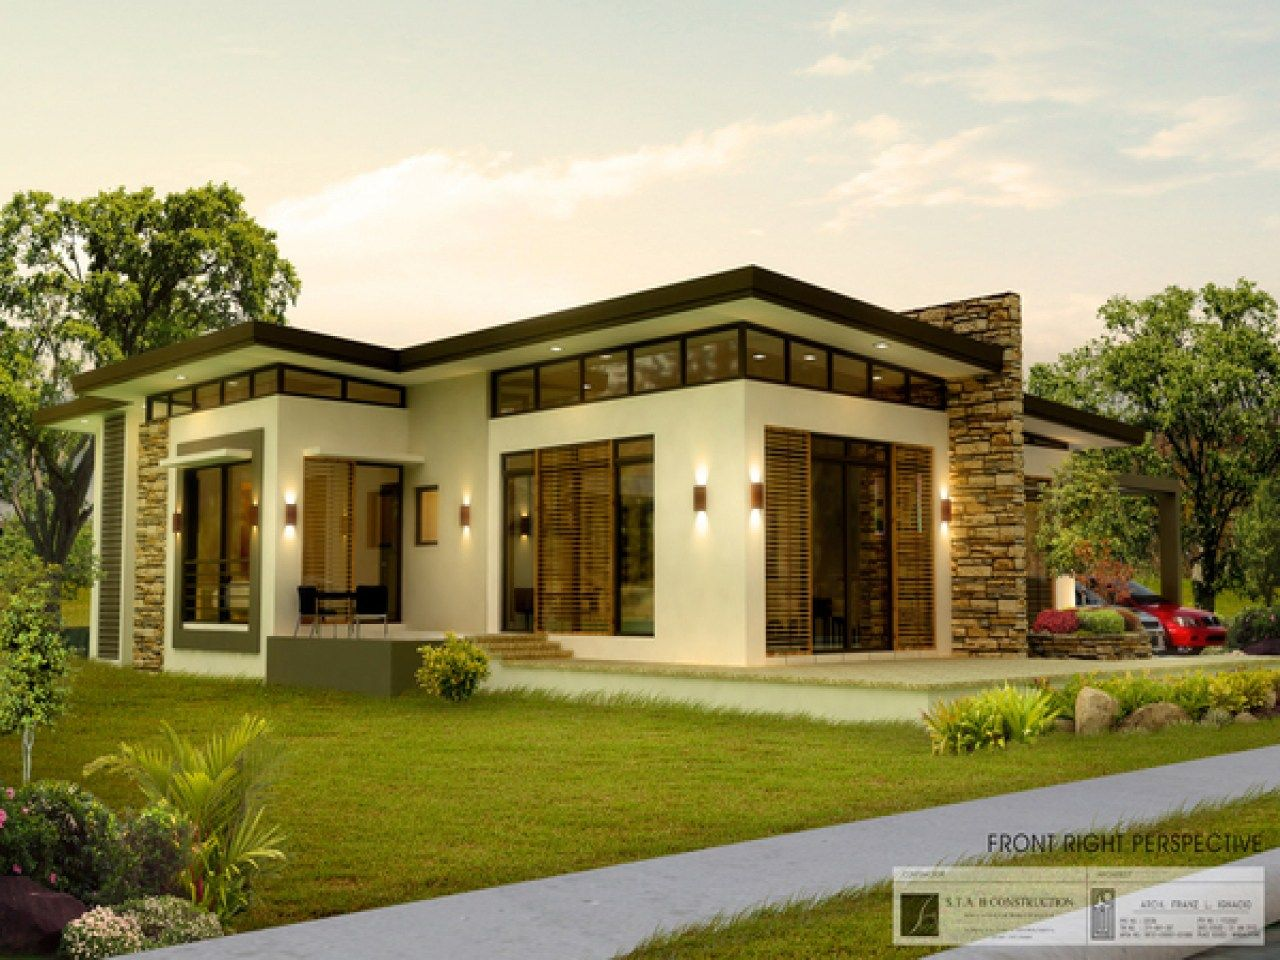 Home plans philippines bungalow house plans philippines design tokjanggutphoto bungalow design